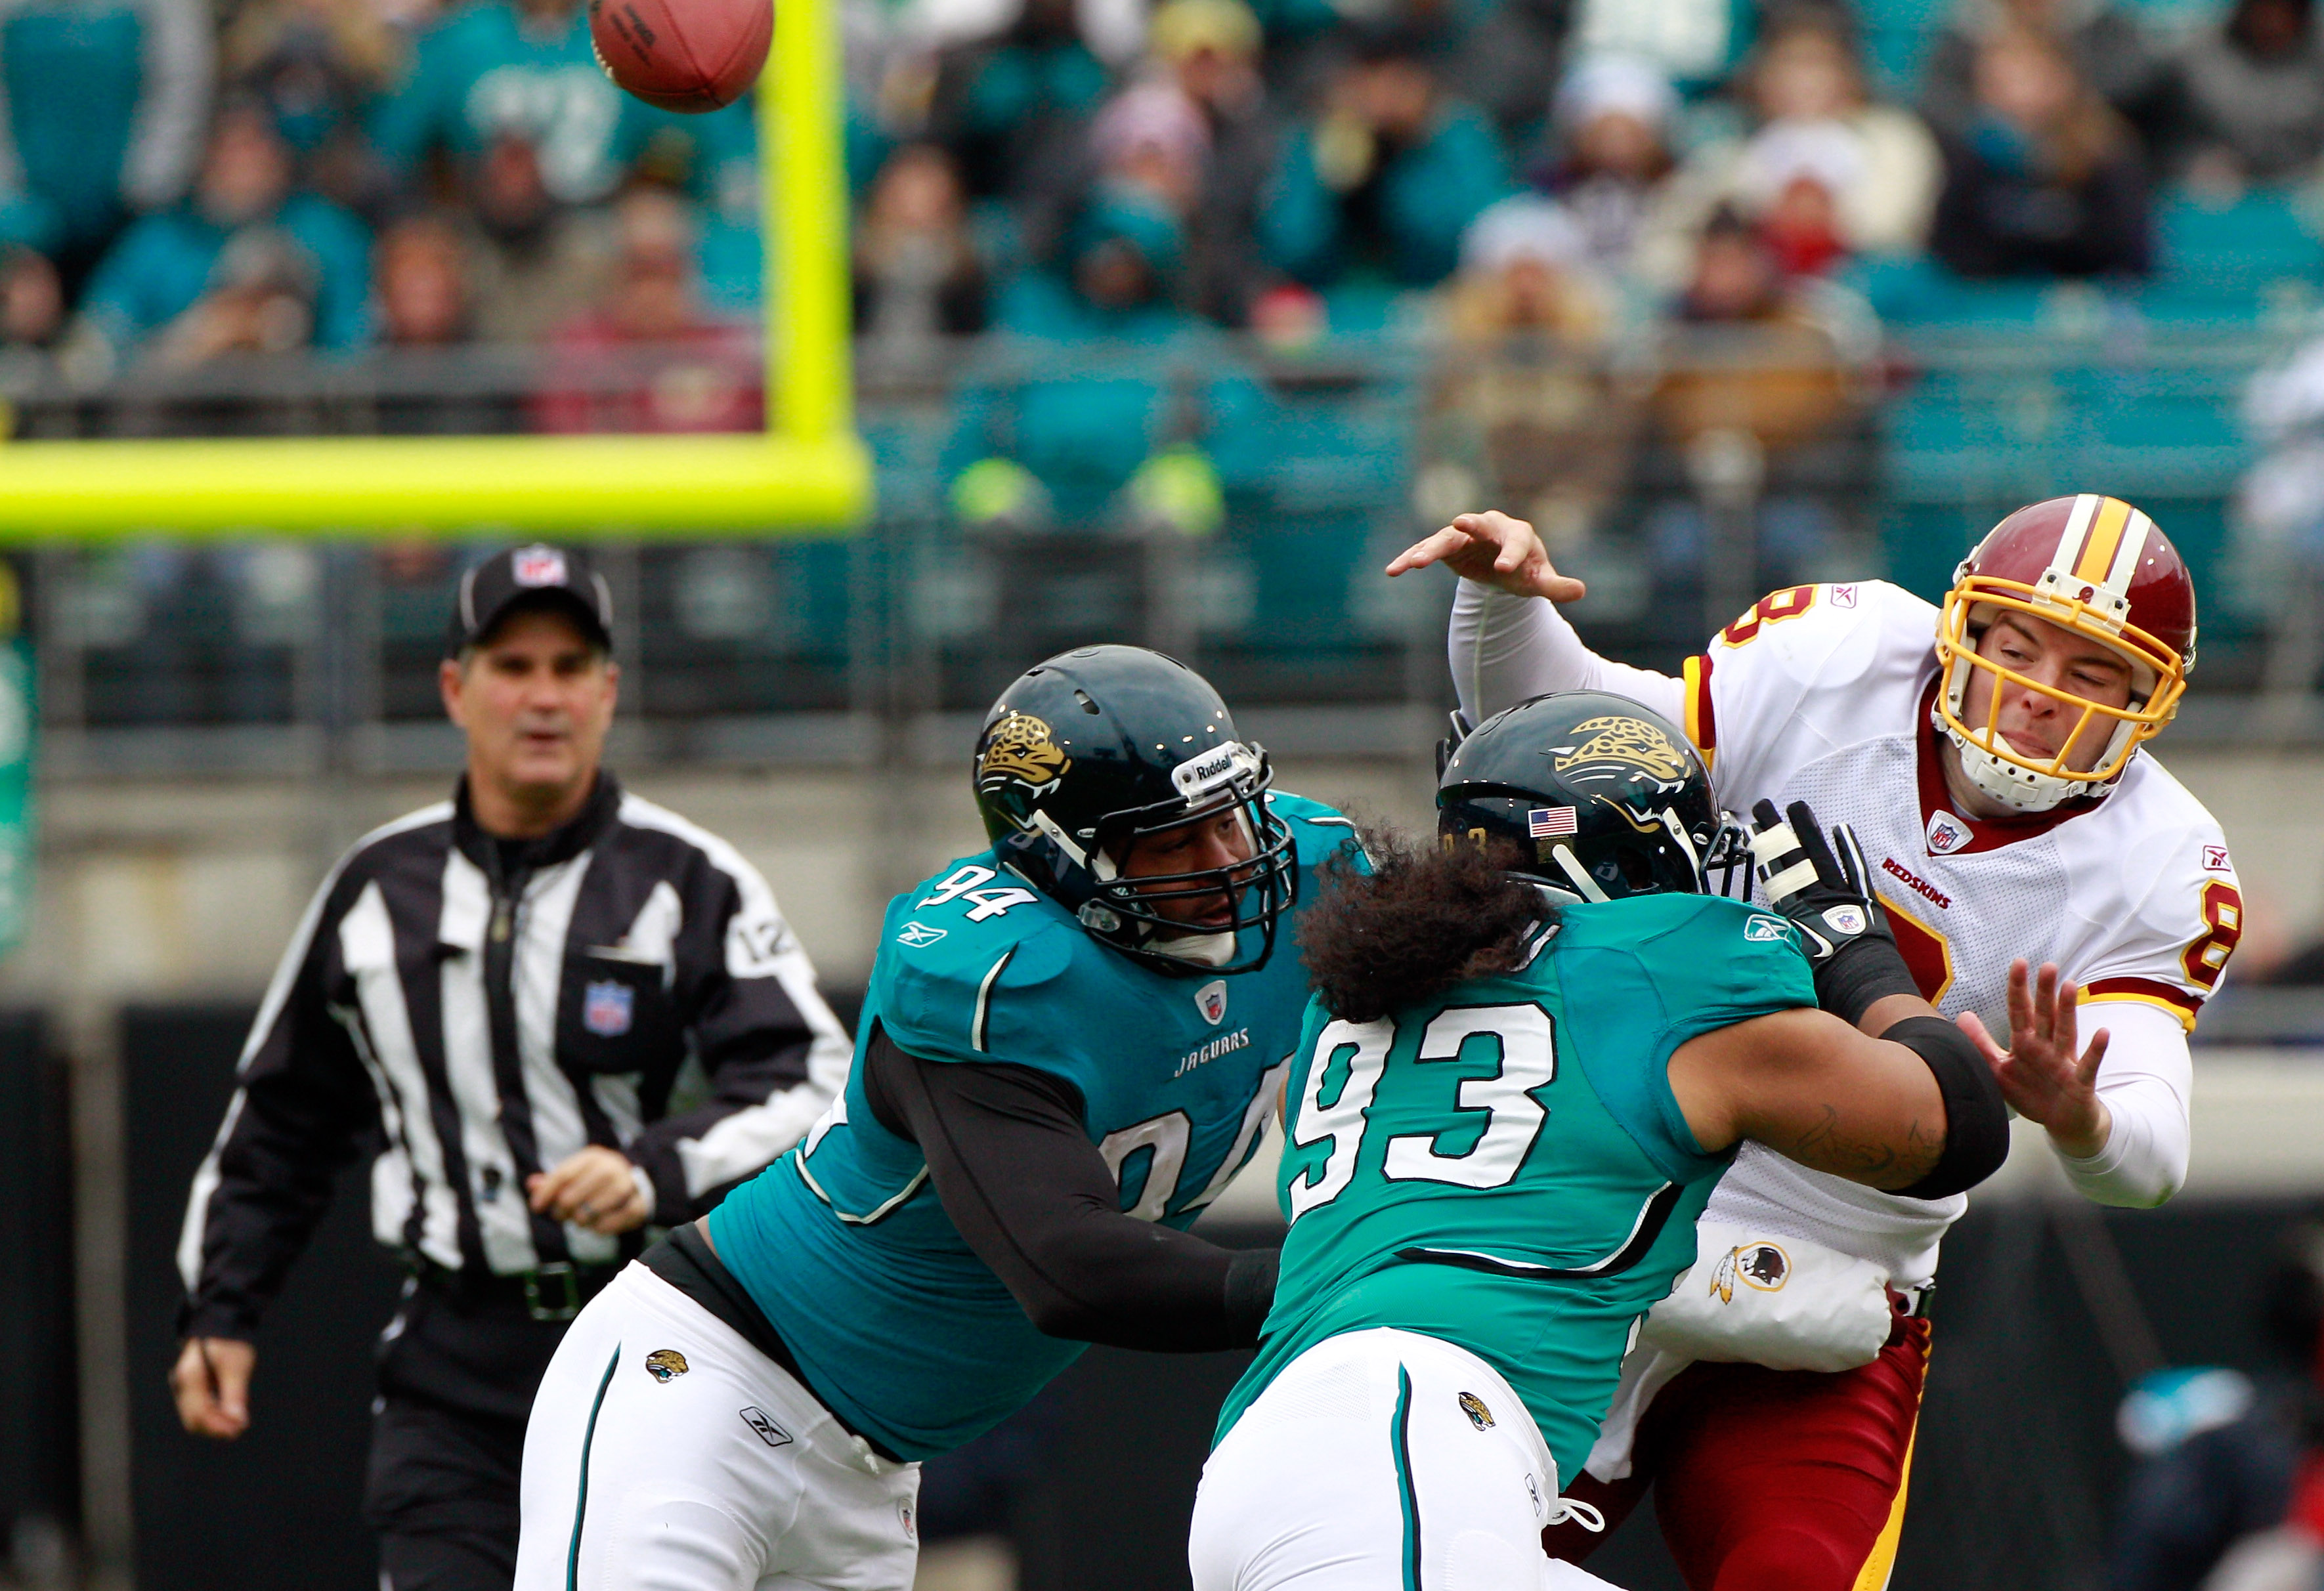 JACKSONVILLE, FL - DECEMBER 26:  Quarterback Rex Grossman #8 of the Washington Redskins is pressured by Tyson Alualu #93 and Jeremy Mincey #94 of the Jacksonville Jaguars during the game at EverBank Field on December 26, 2010 in Jacksonville, Florida.  (P